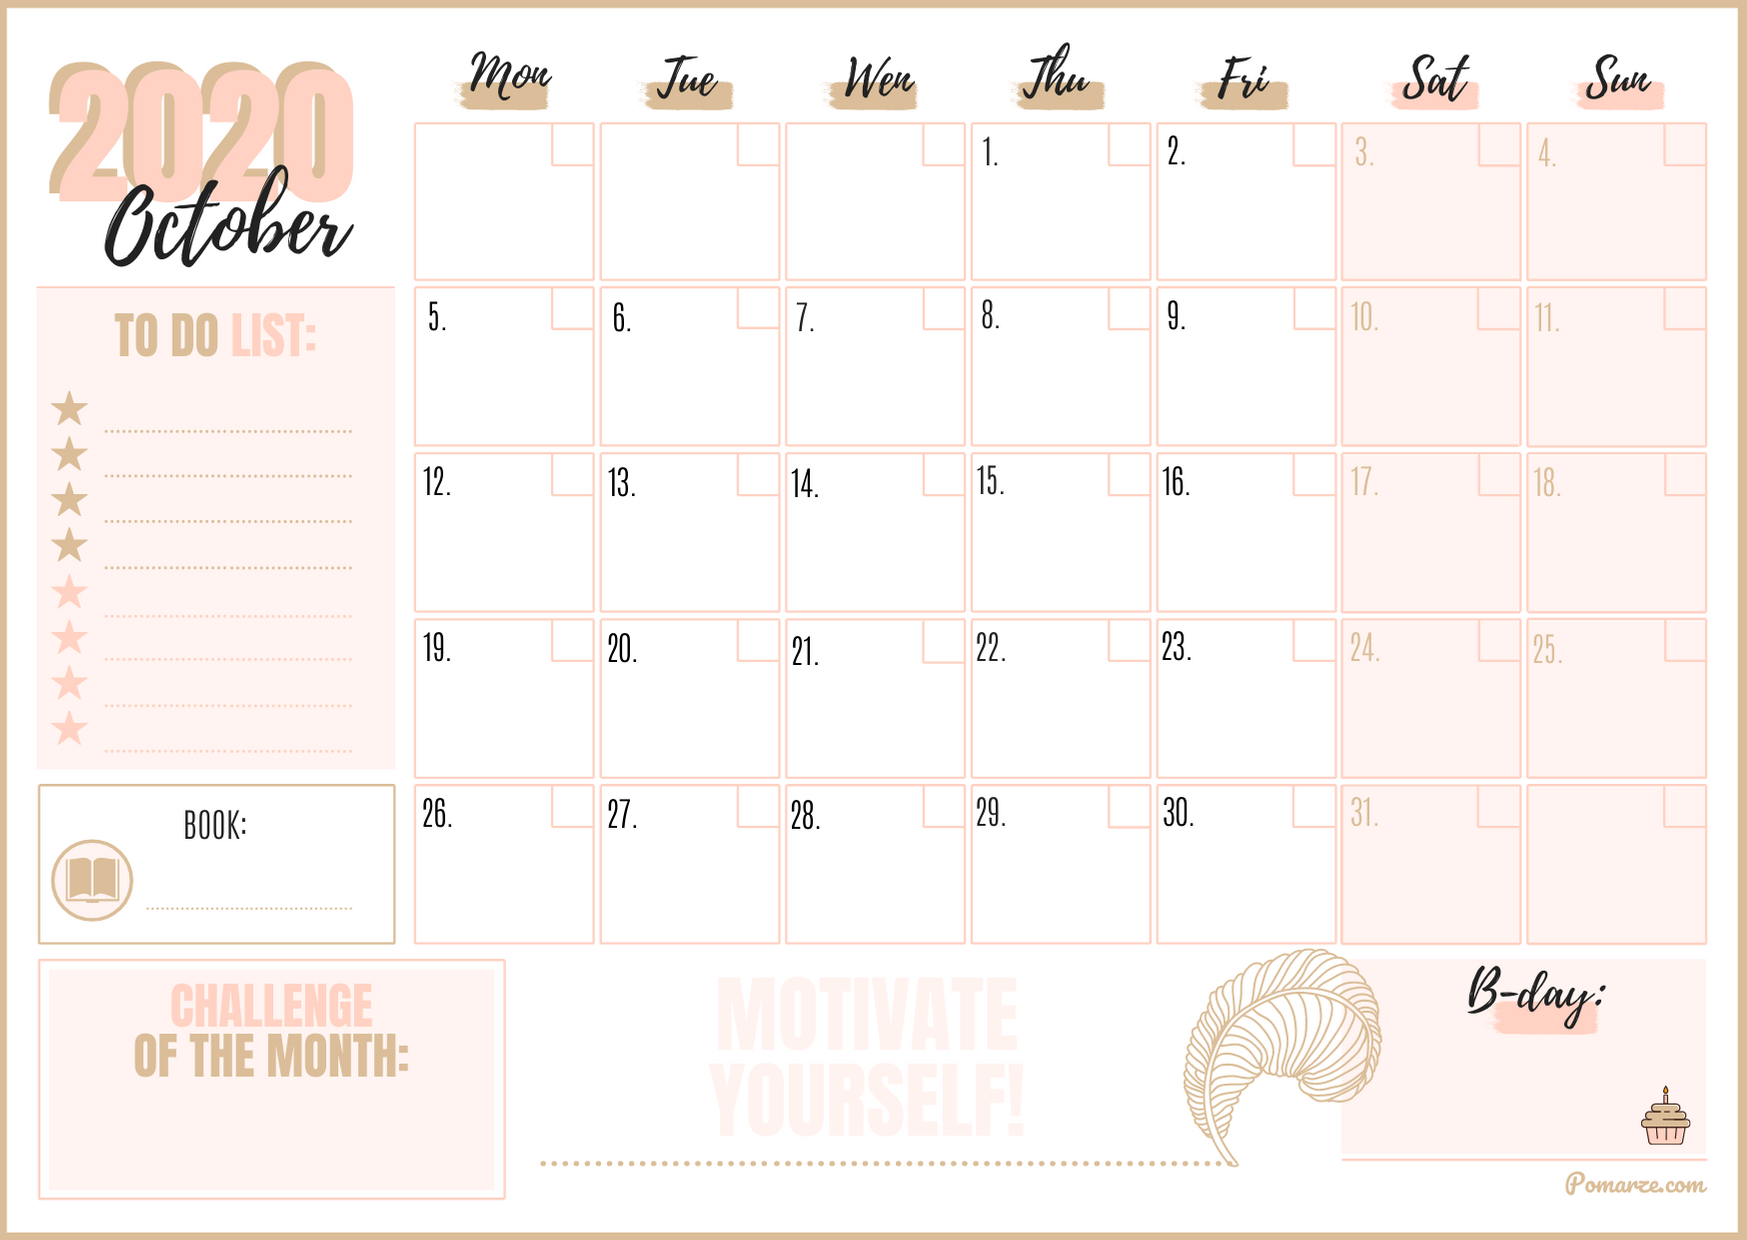 Monthly Calendar Planner October 2020 printable pfd colorful